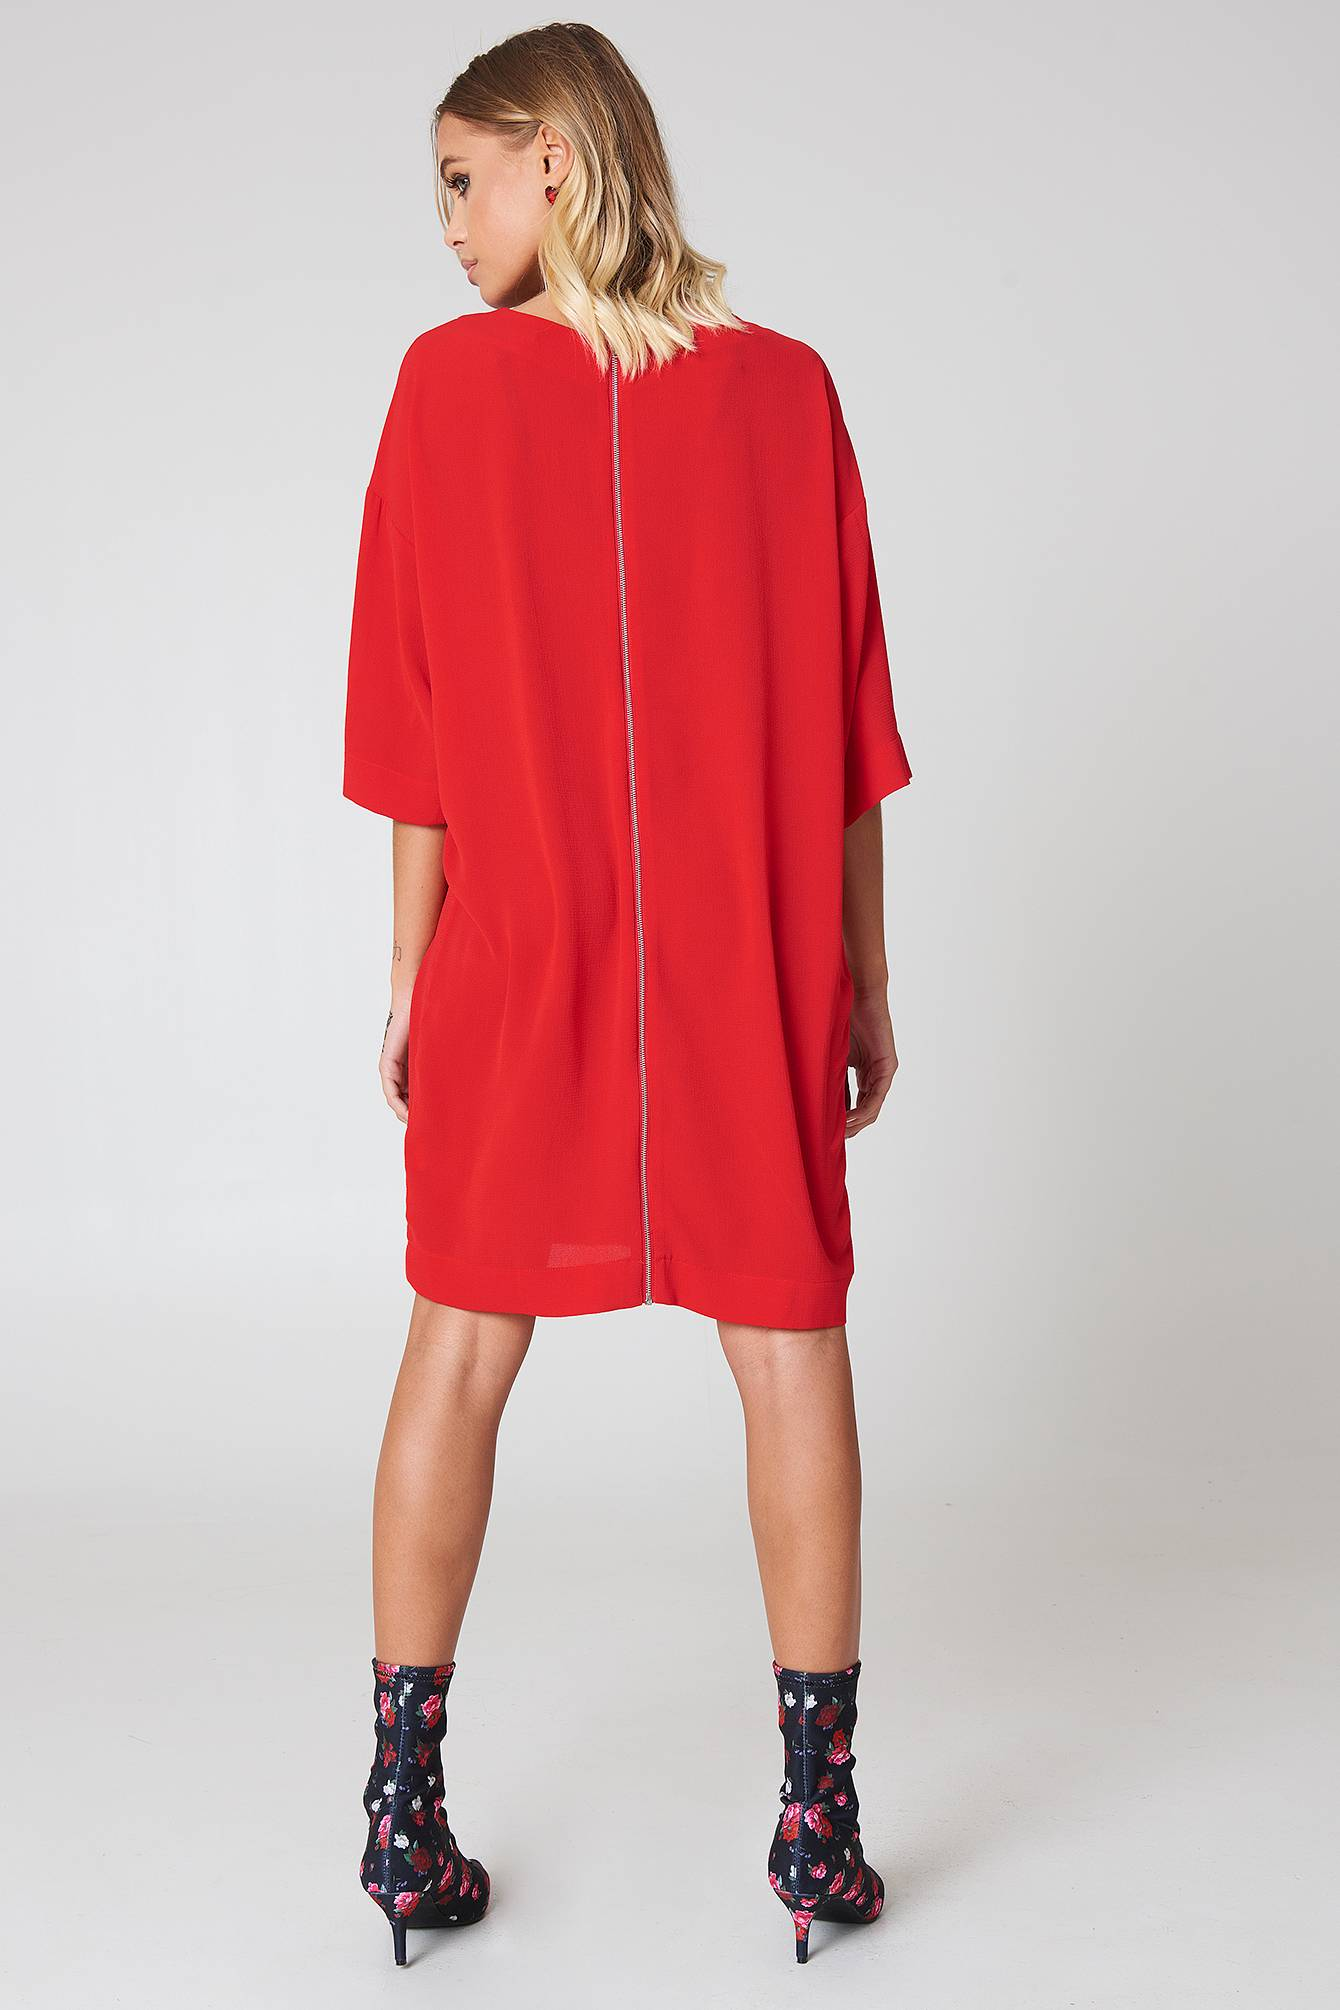 Rut&Circle Isabelle Dress - Red